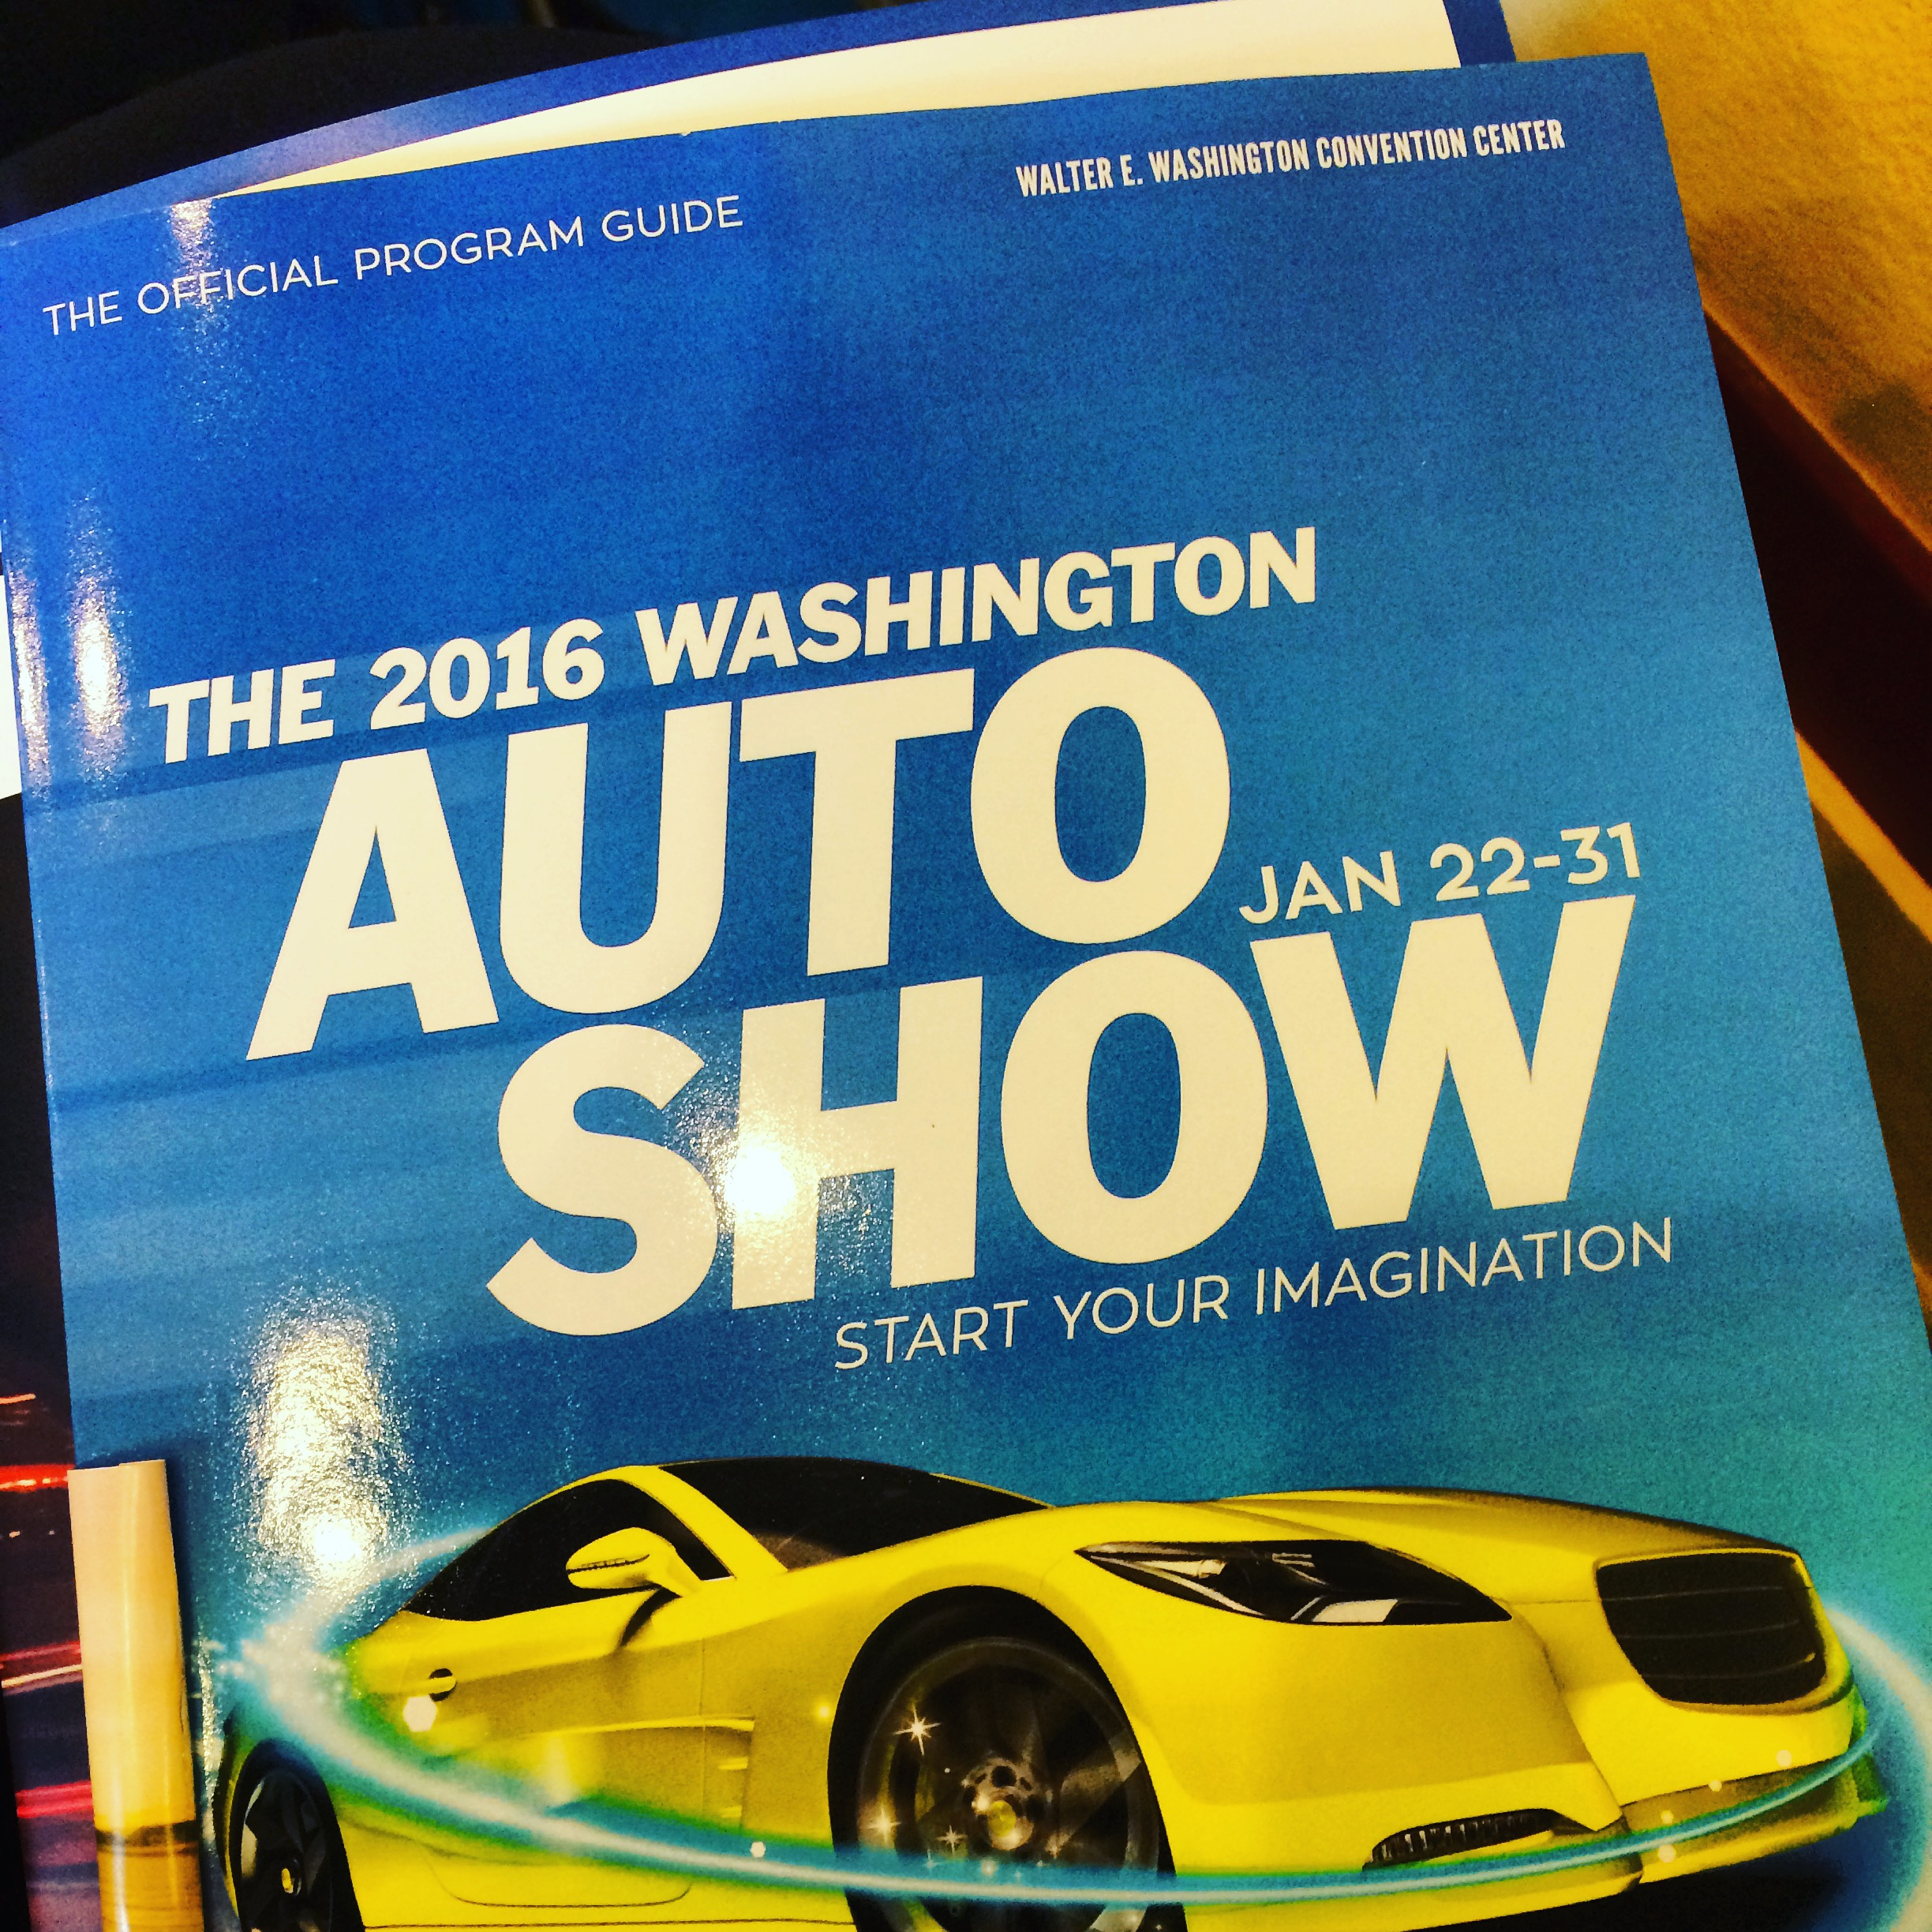 Washington Auto Show 2020.Washington Convention Center Auto Show Bayside Miami